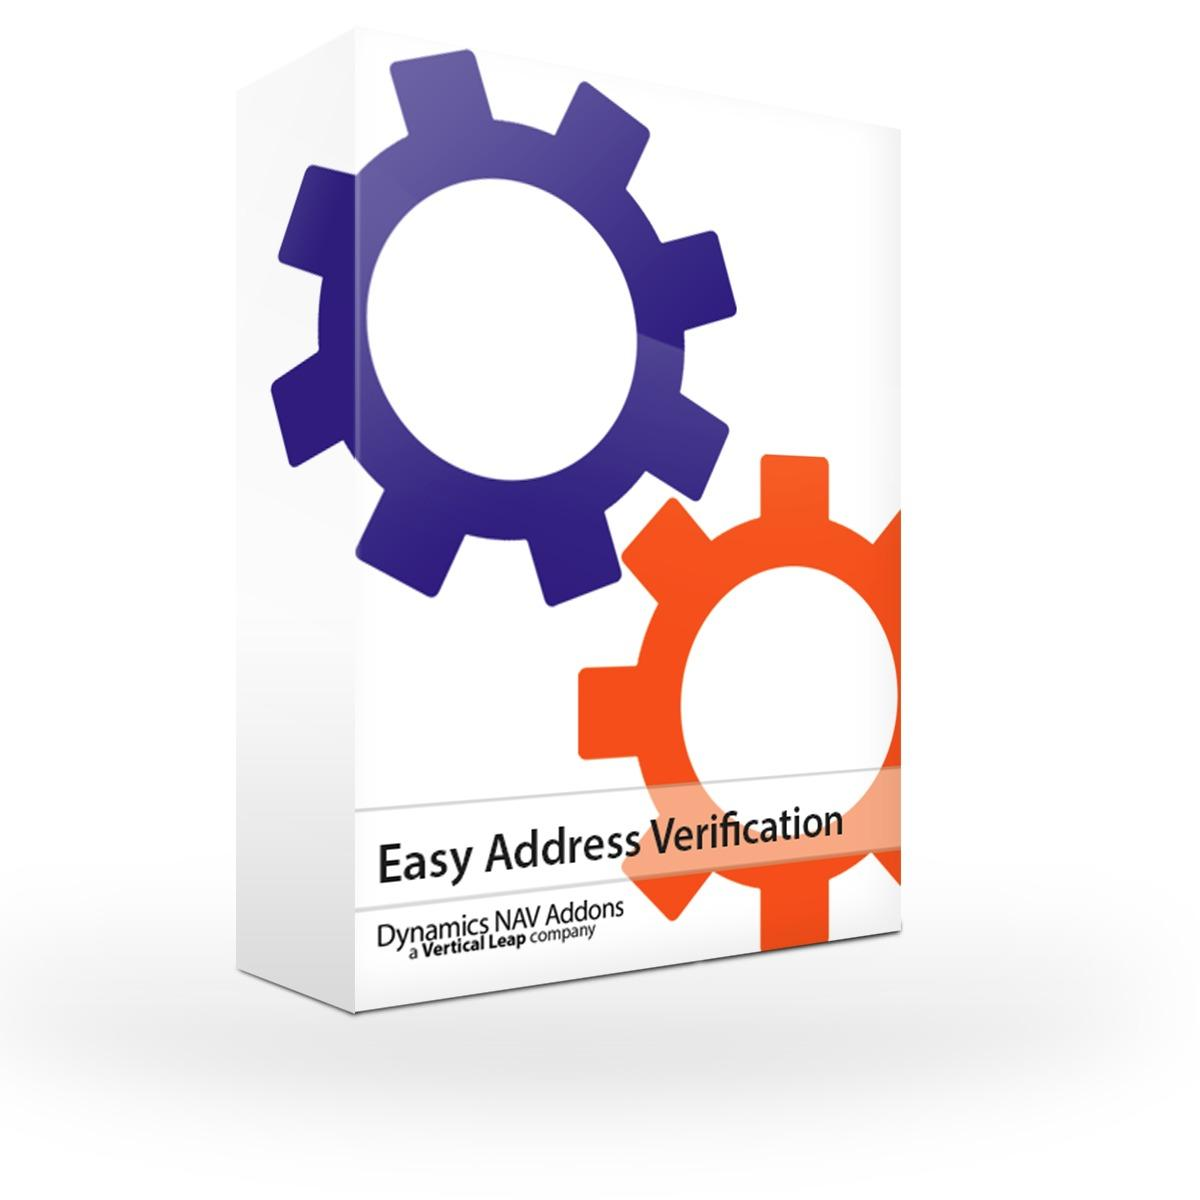 Easy Address Verification helps you verify your Dynamics NAV addresses with the US Postal Service Database